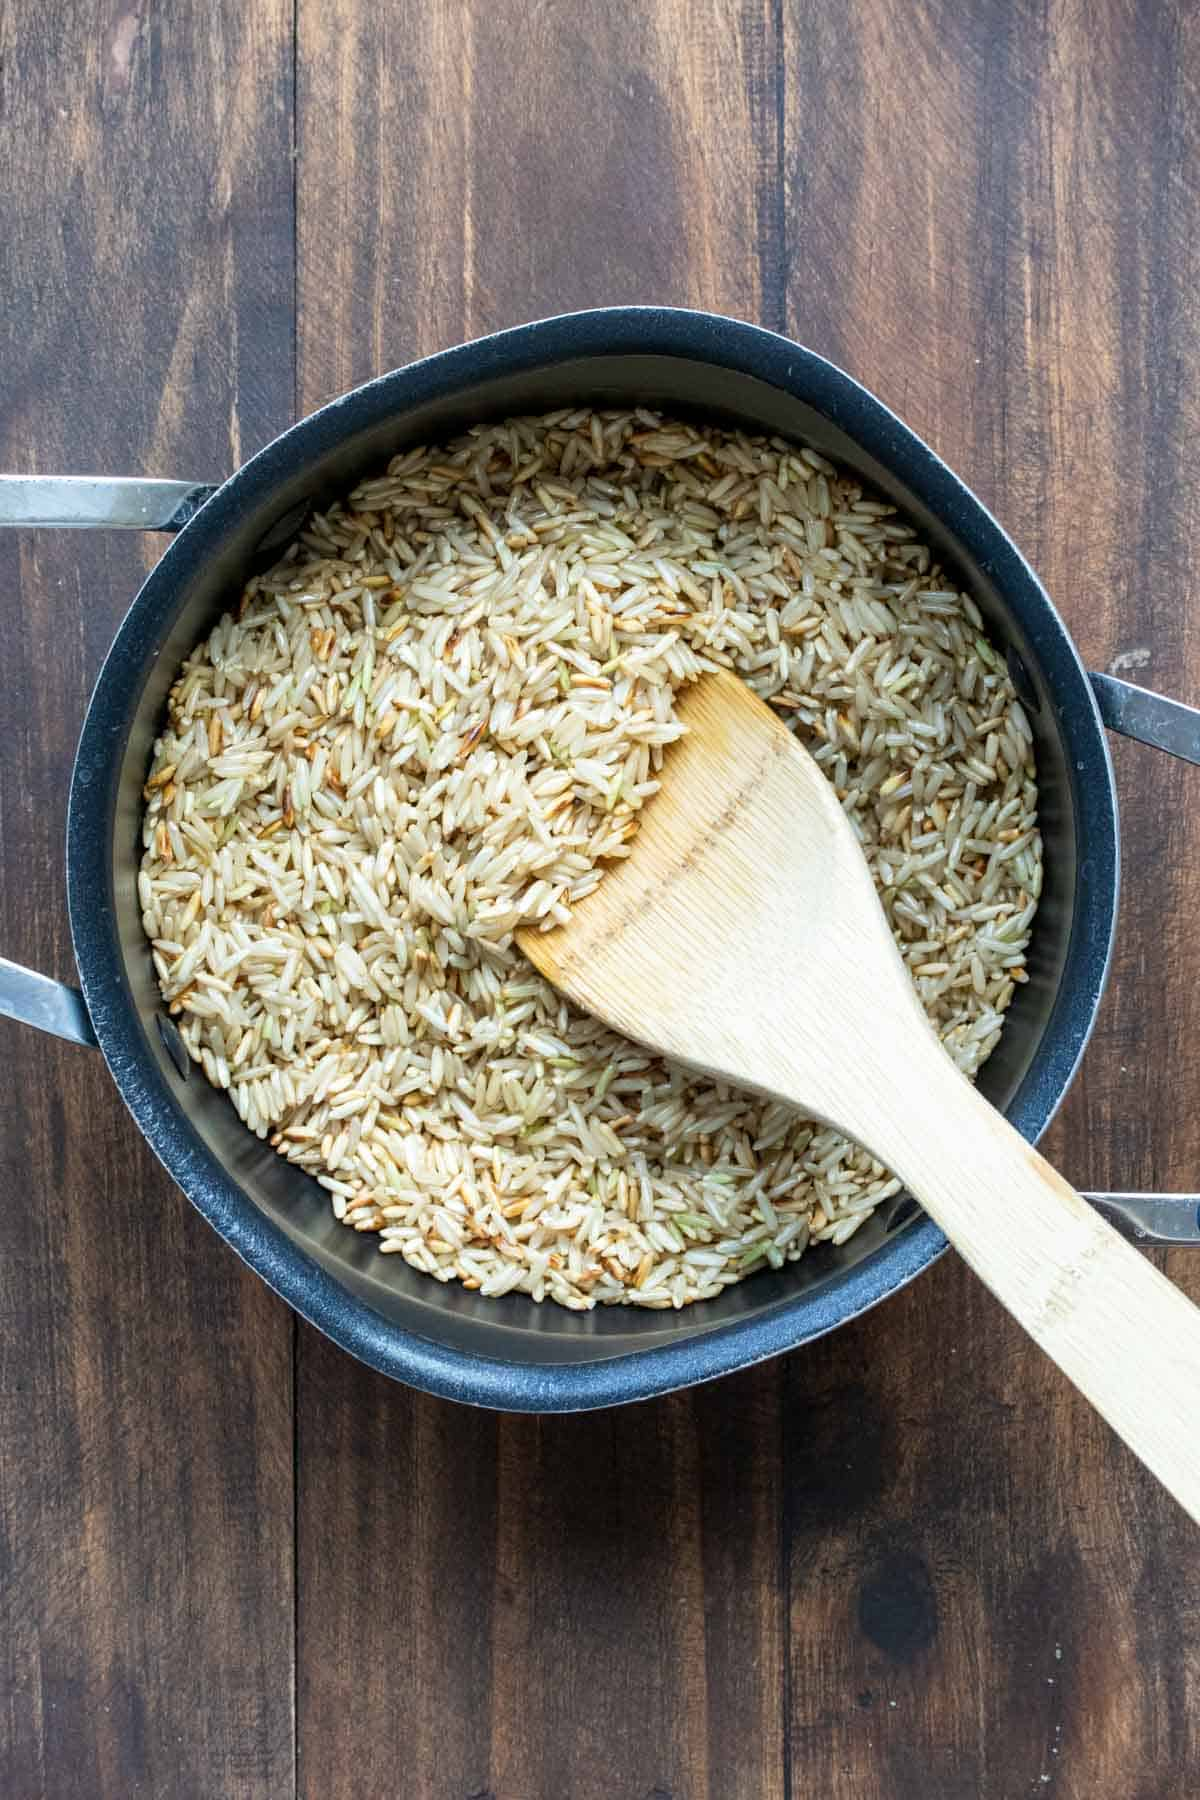 Wooden spoon mixing long grain brown rice in a pot